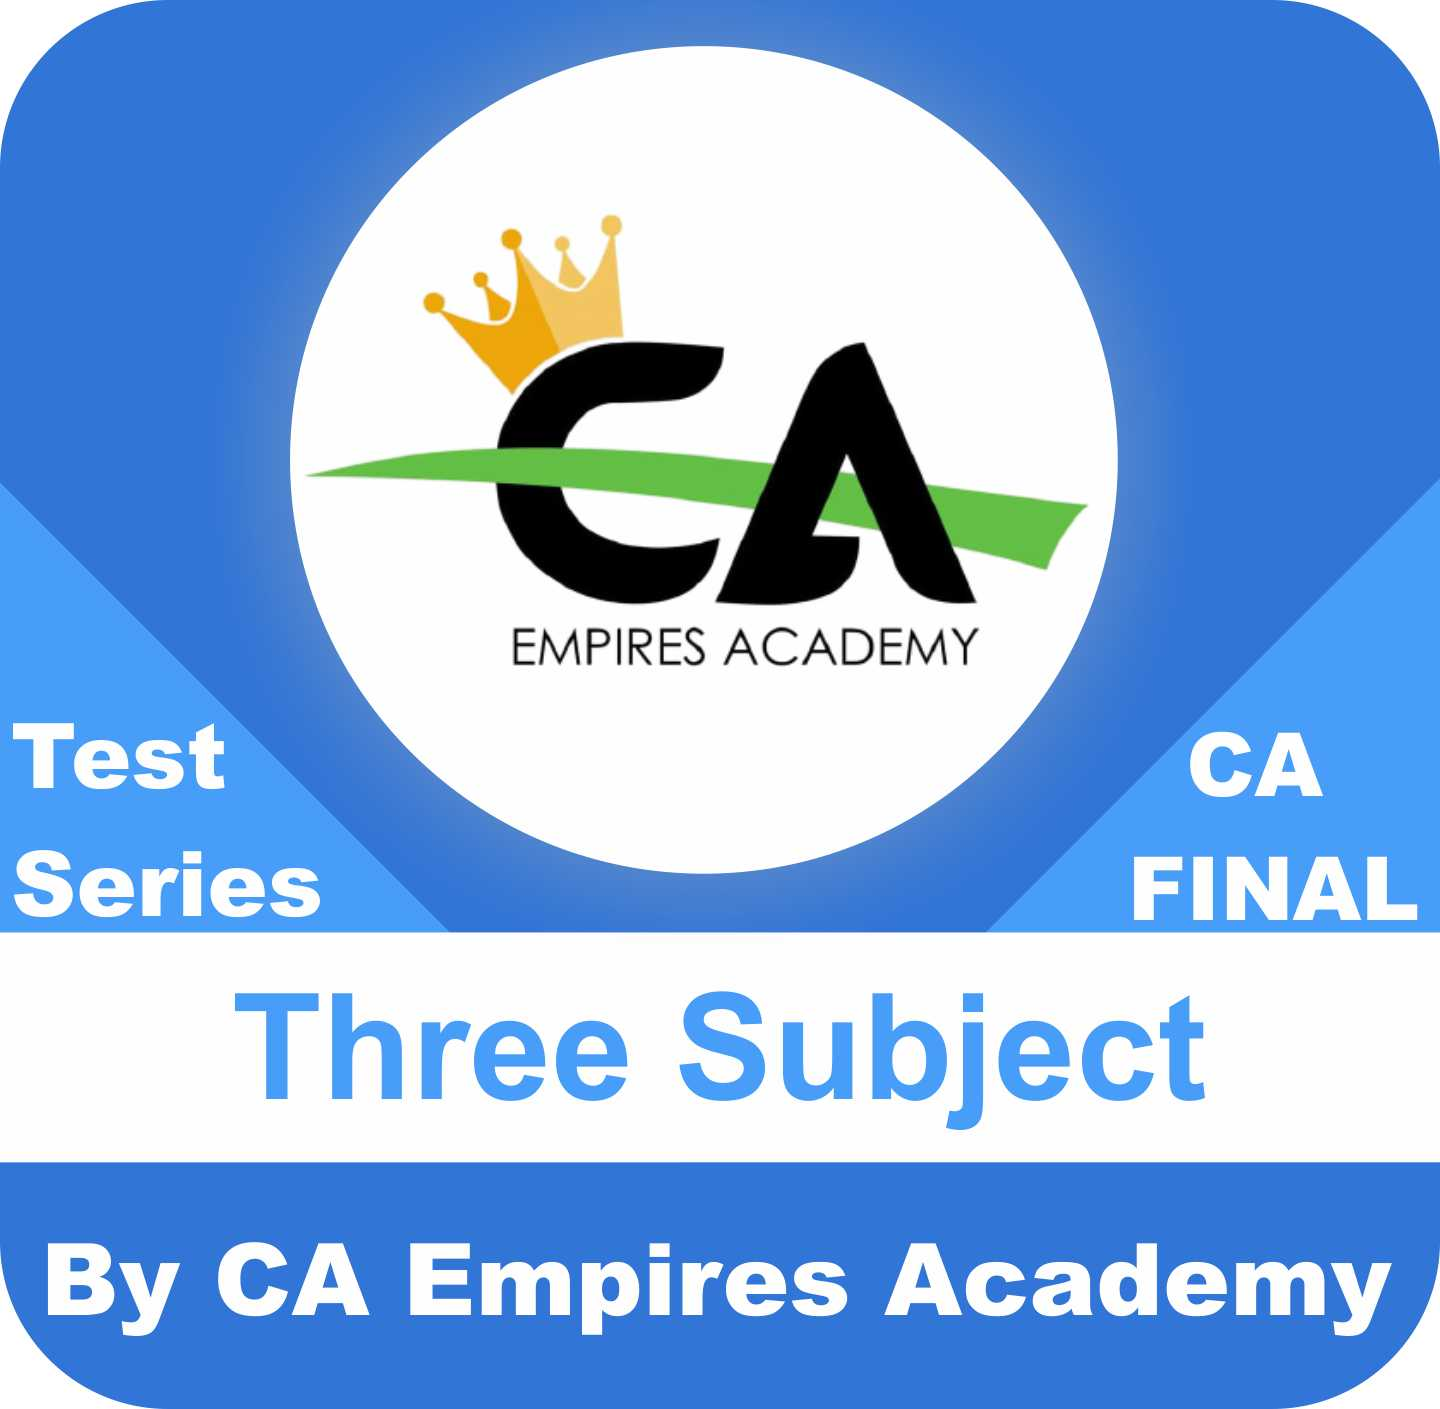 CA Final Any Three Subject Test Series in Bronze Plan by CA Empires Academy